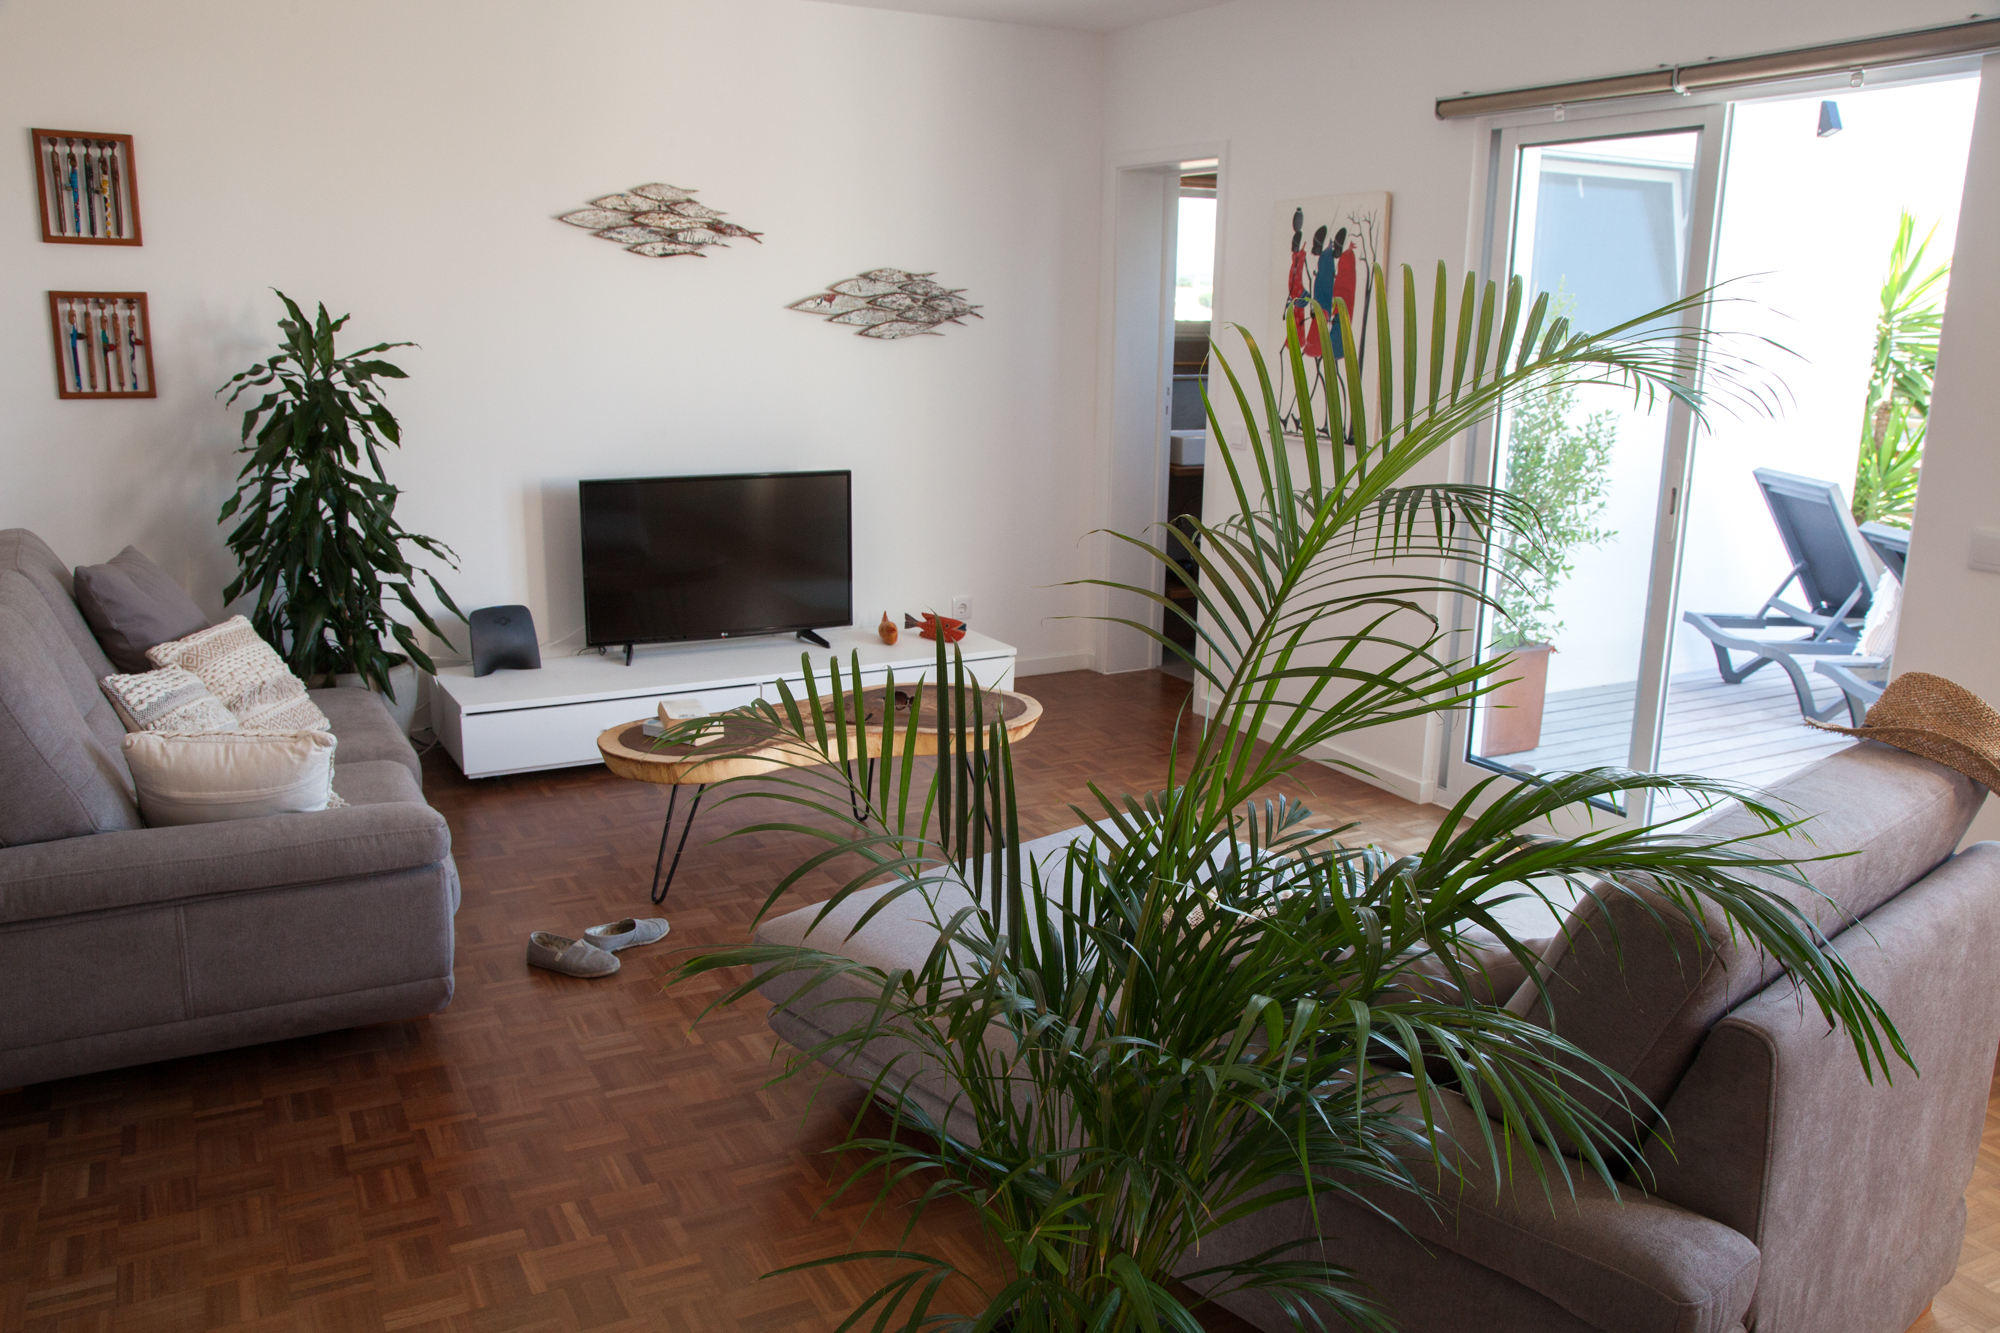 Azores Accommodation Villa Terra Living room - Azores Connections.jpg